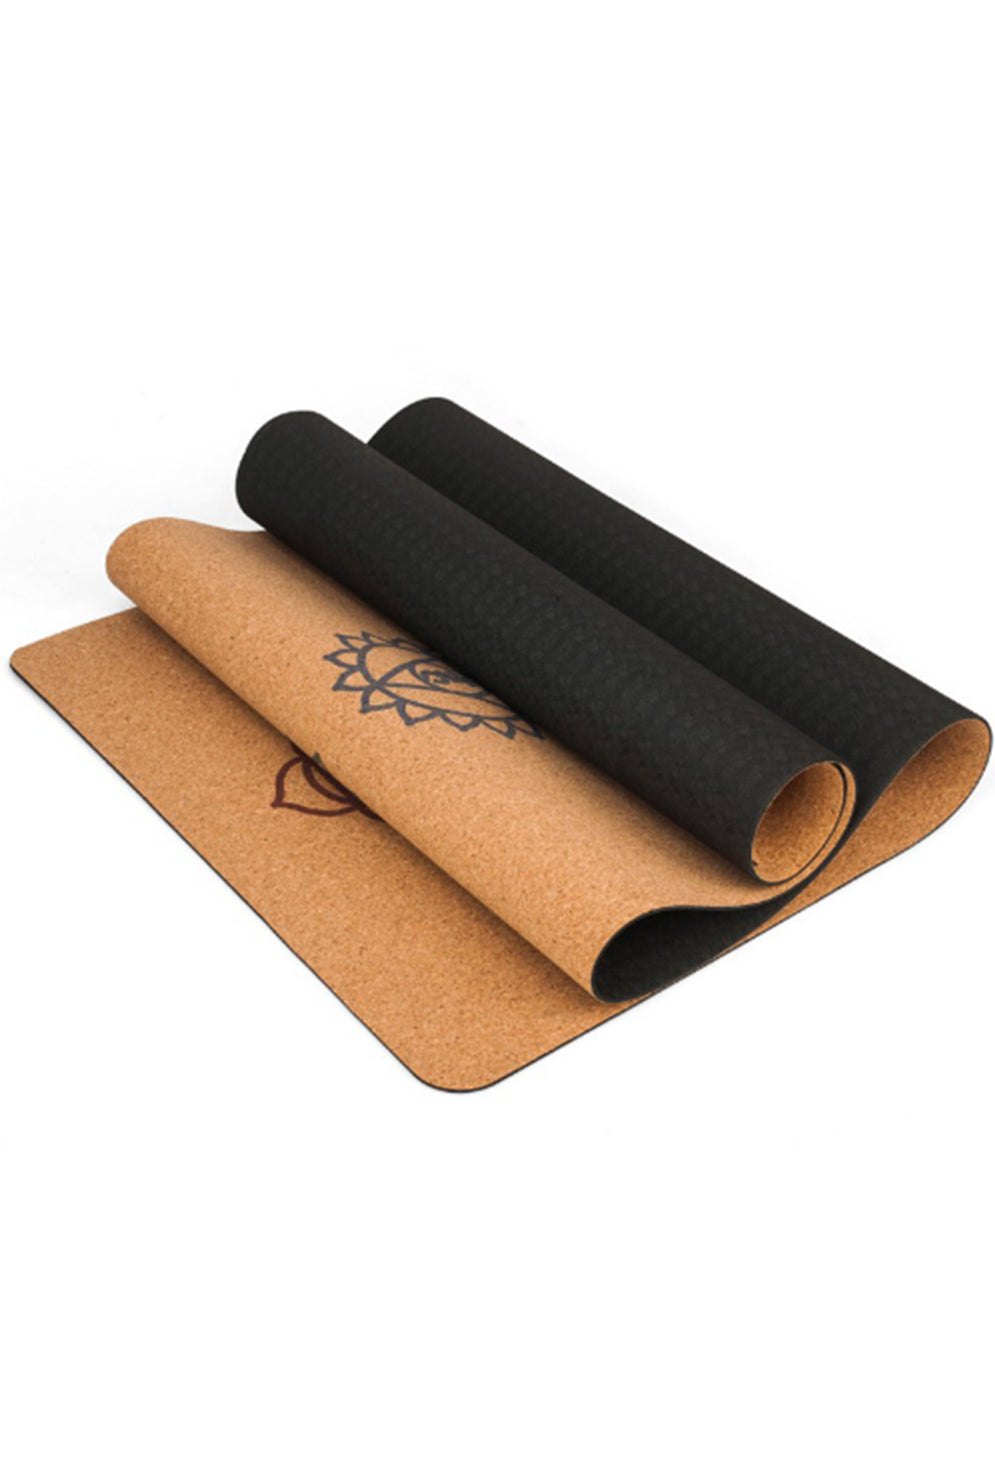 CUSTOM CORK YOGA MATS